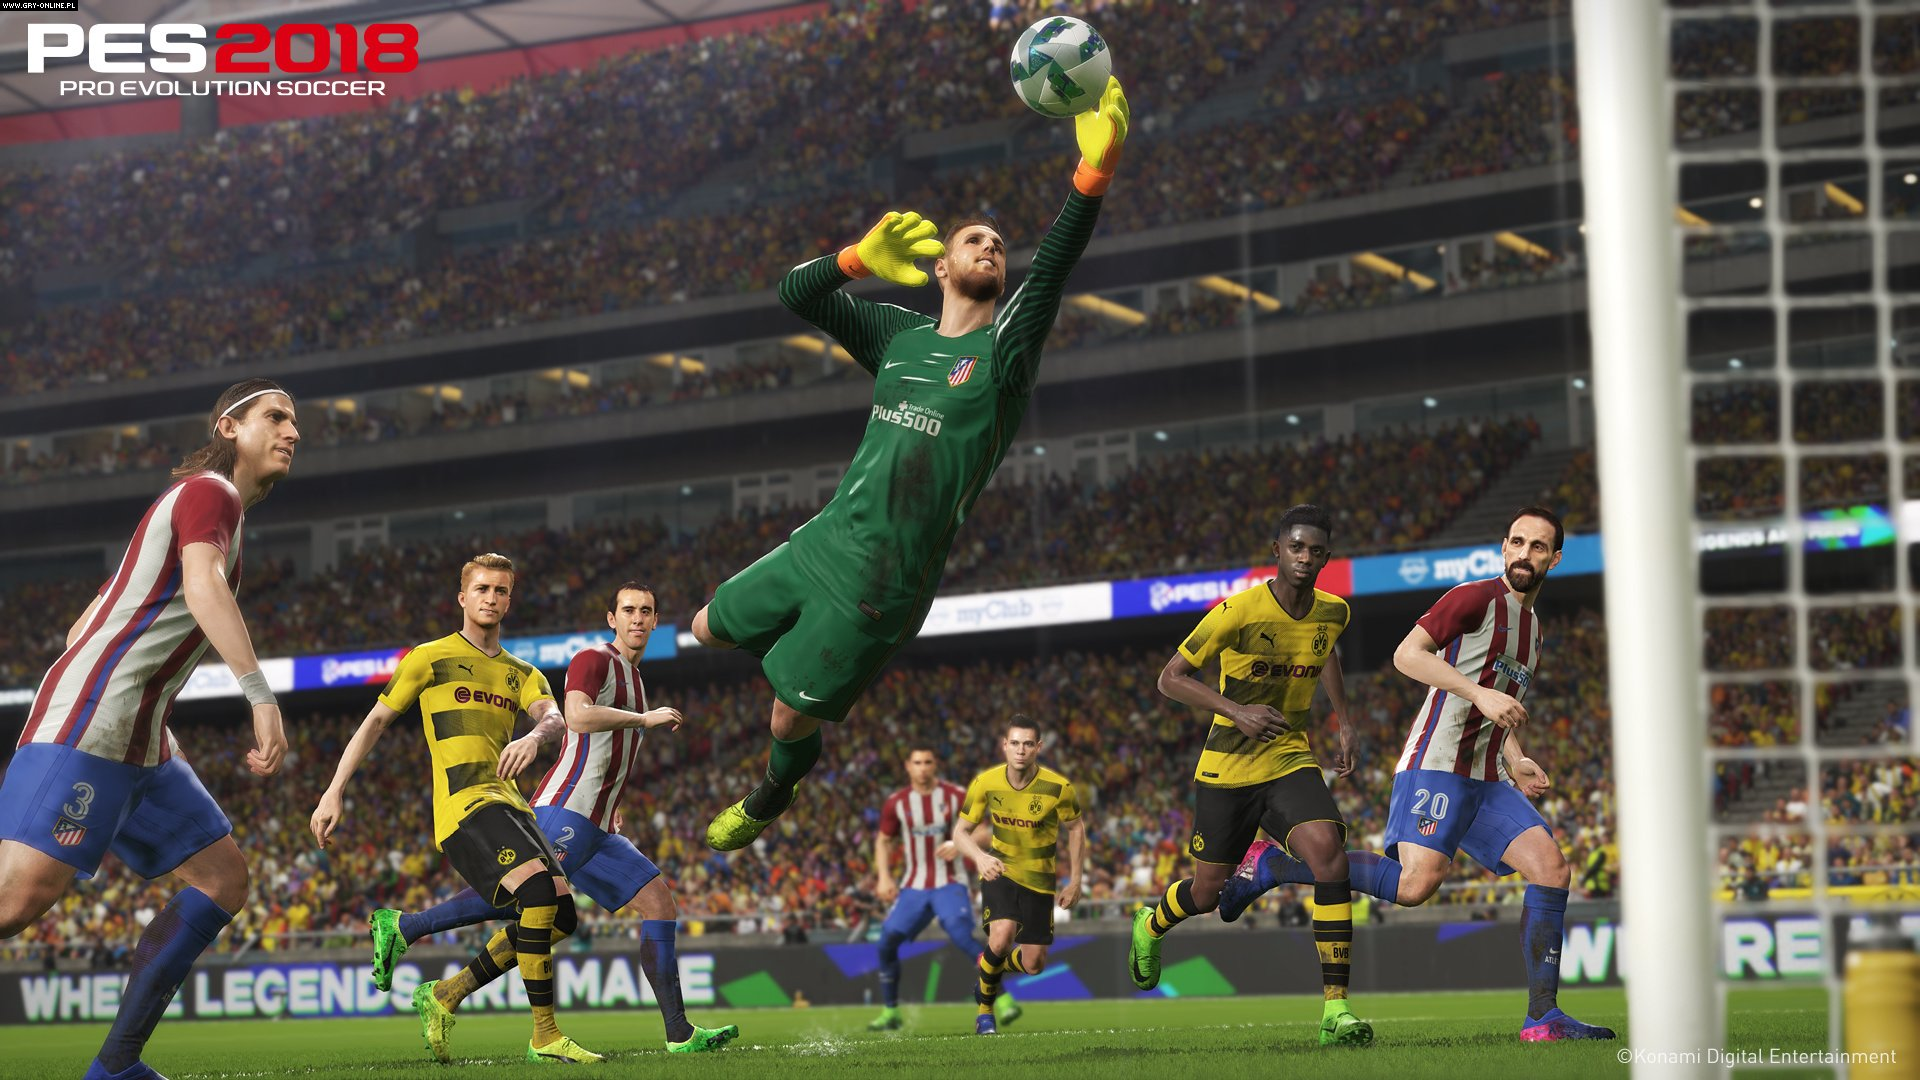 Pro Evolution Soccer 2018 PC, PS4, XONE Games Image 1/11, Konami